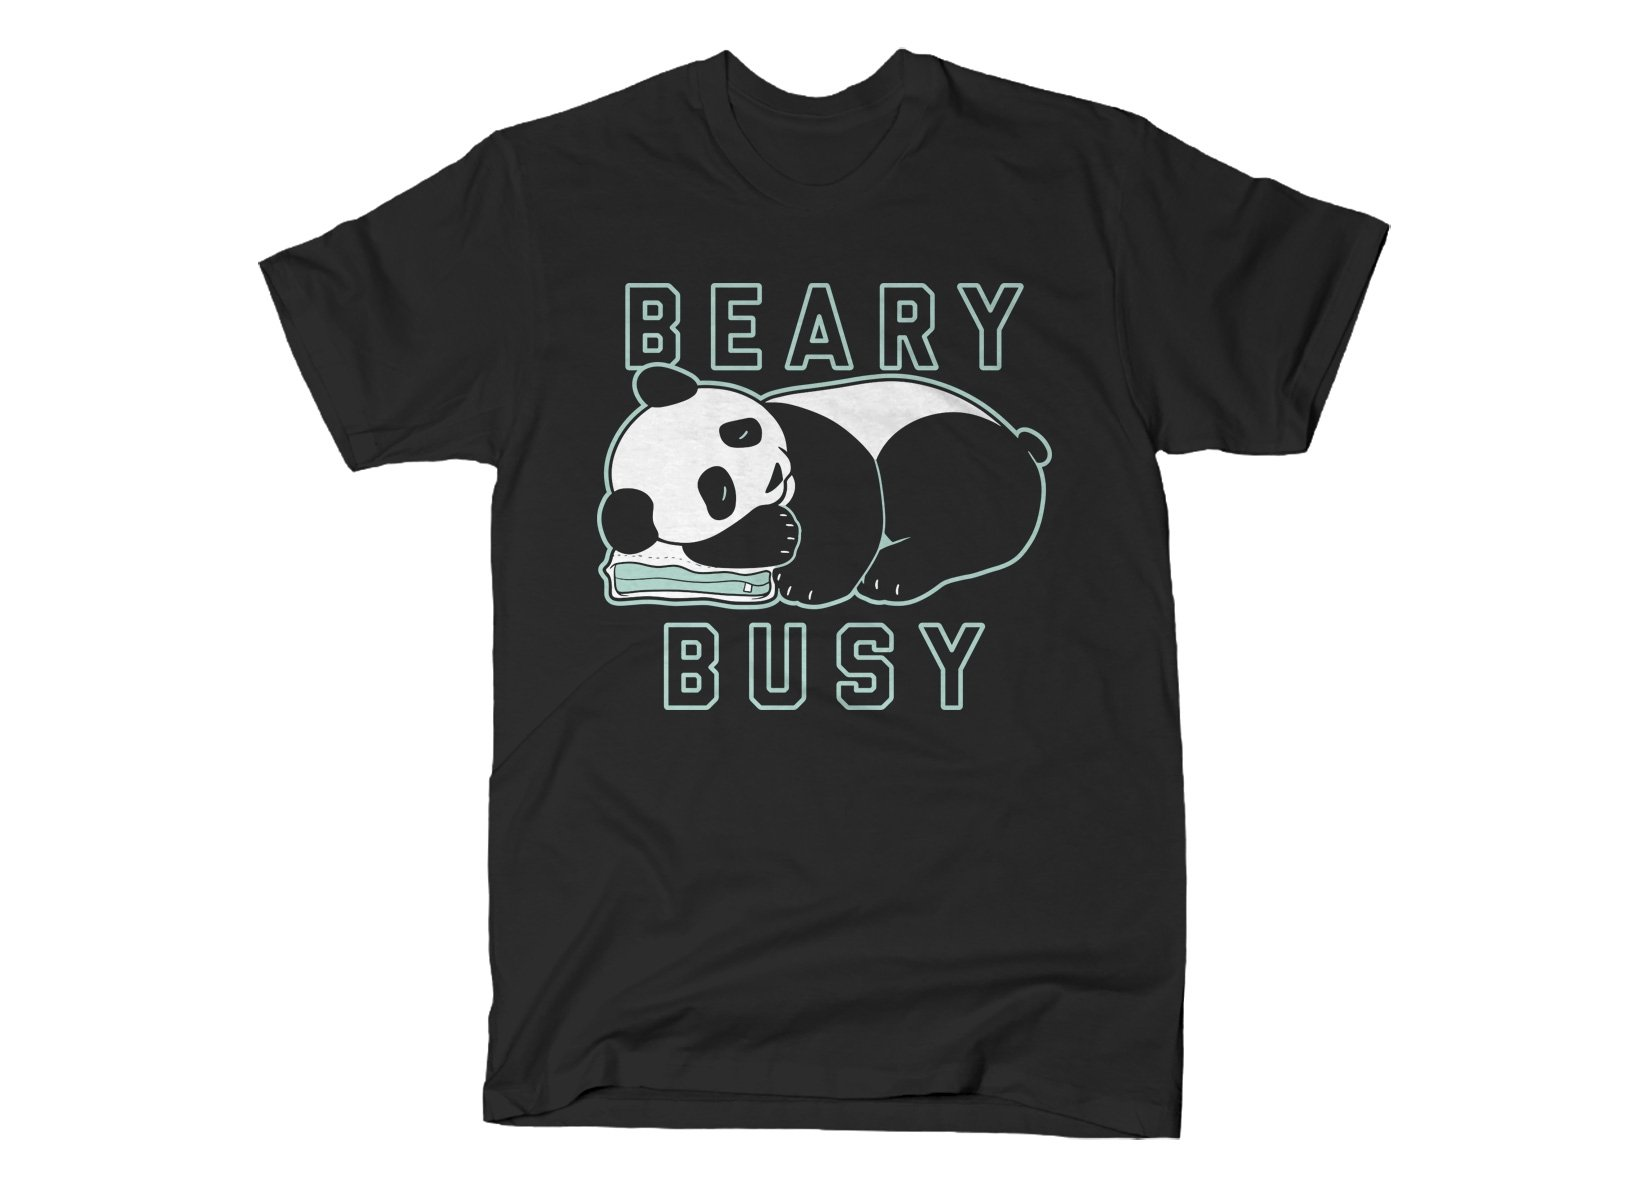 Beary Busy on Mens T-Shirt